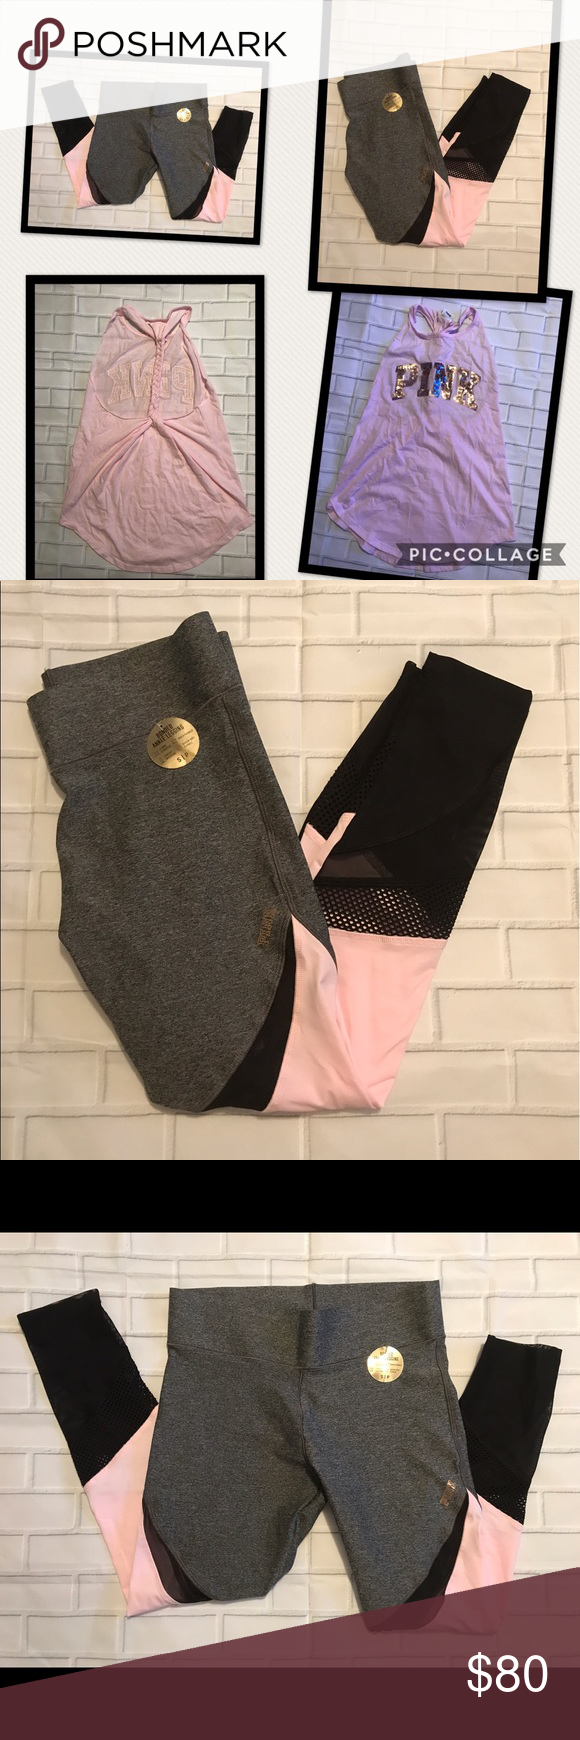 NWT VS/PINK BUNDLE DEAL SIZE S NWT VS/PINK BUNDLE DEAL  SIZE S 1-Bonded Ankle Leggings  1- Racer-back braided tank Original Price: $100.00 PINK Victoria's Secret Pants Leggings